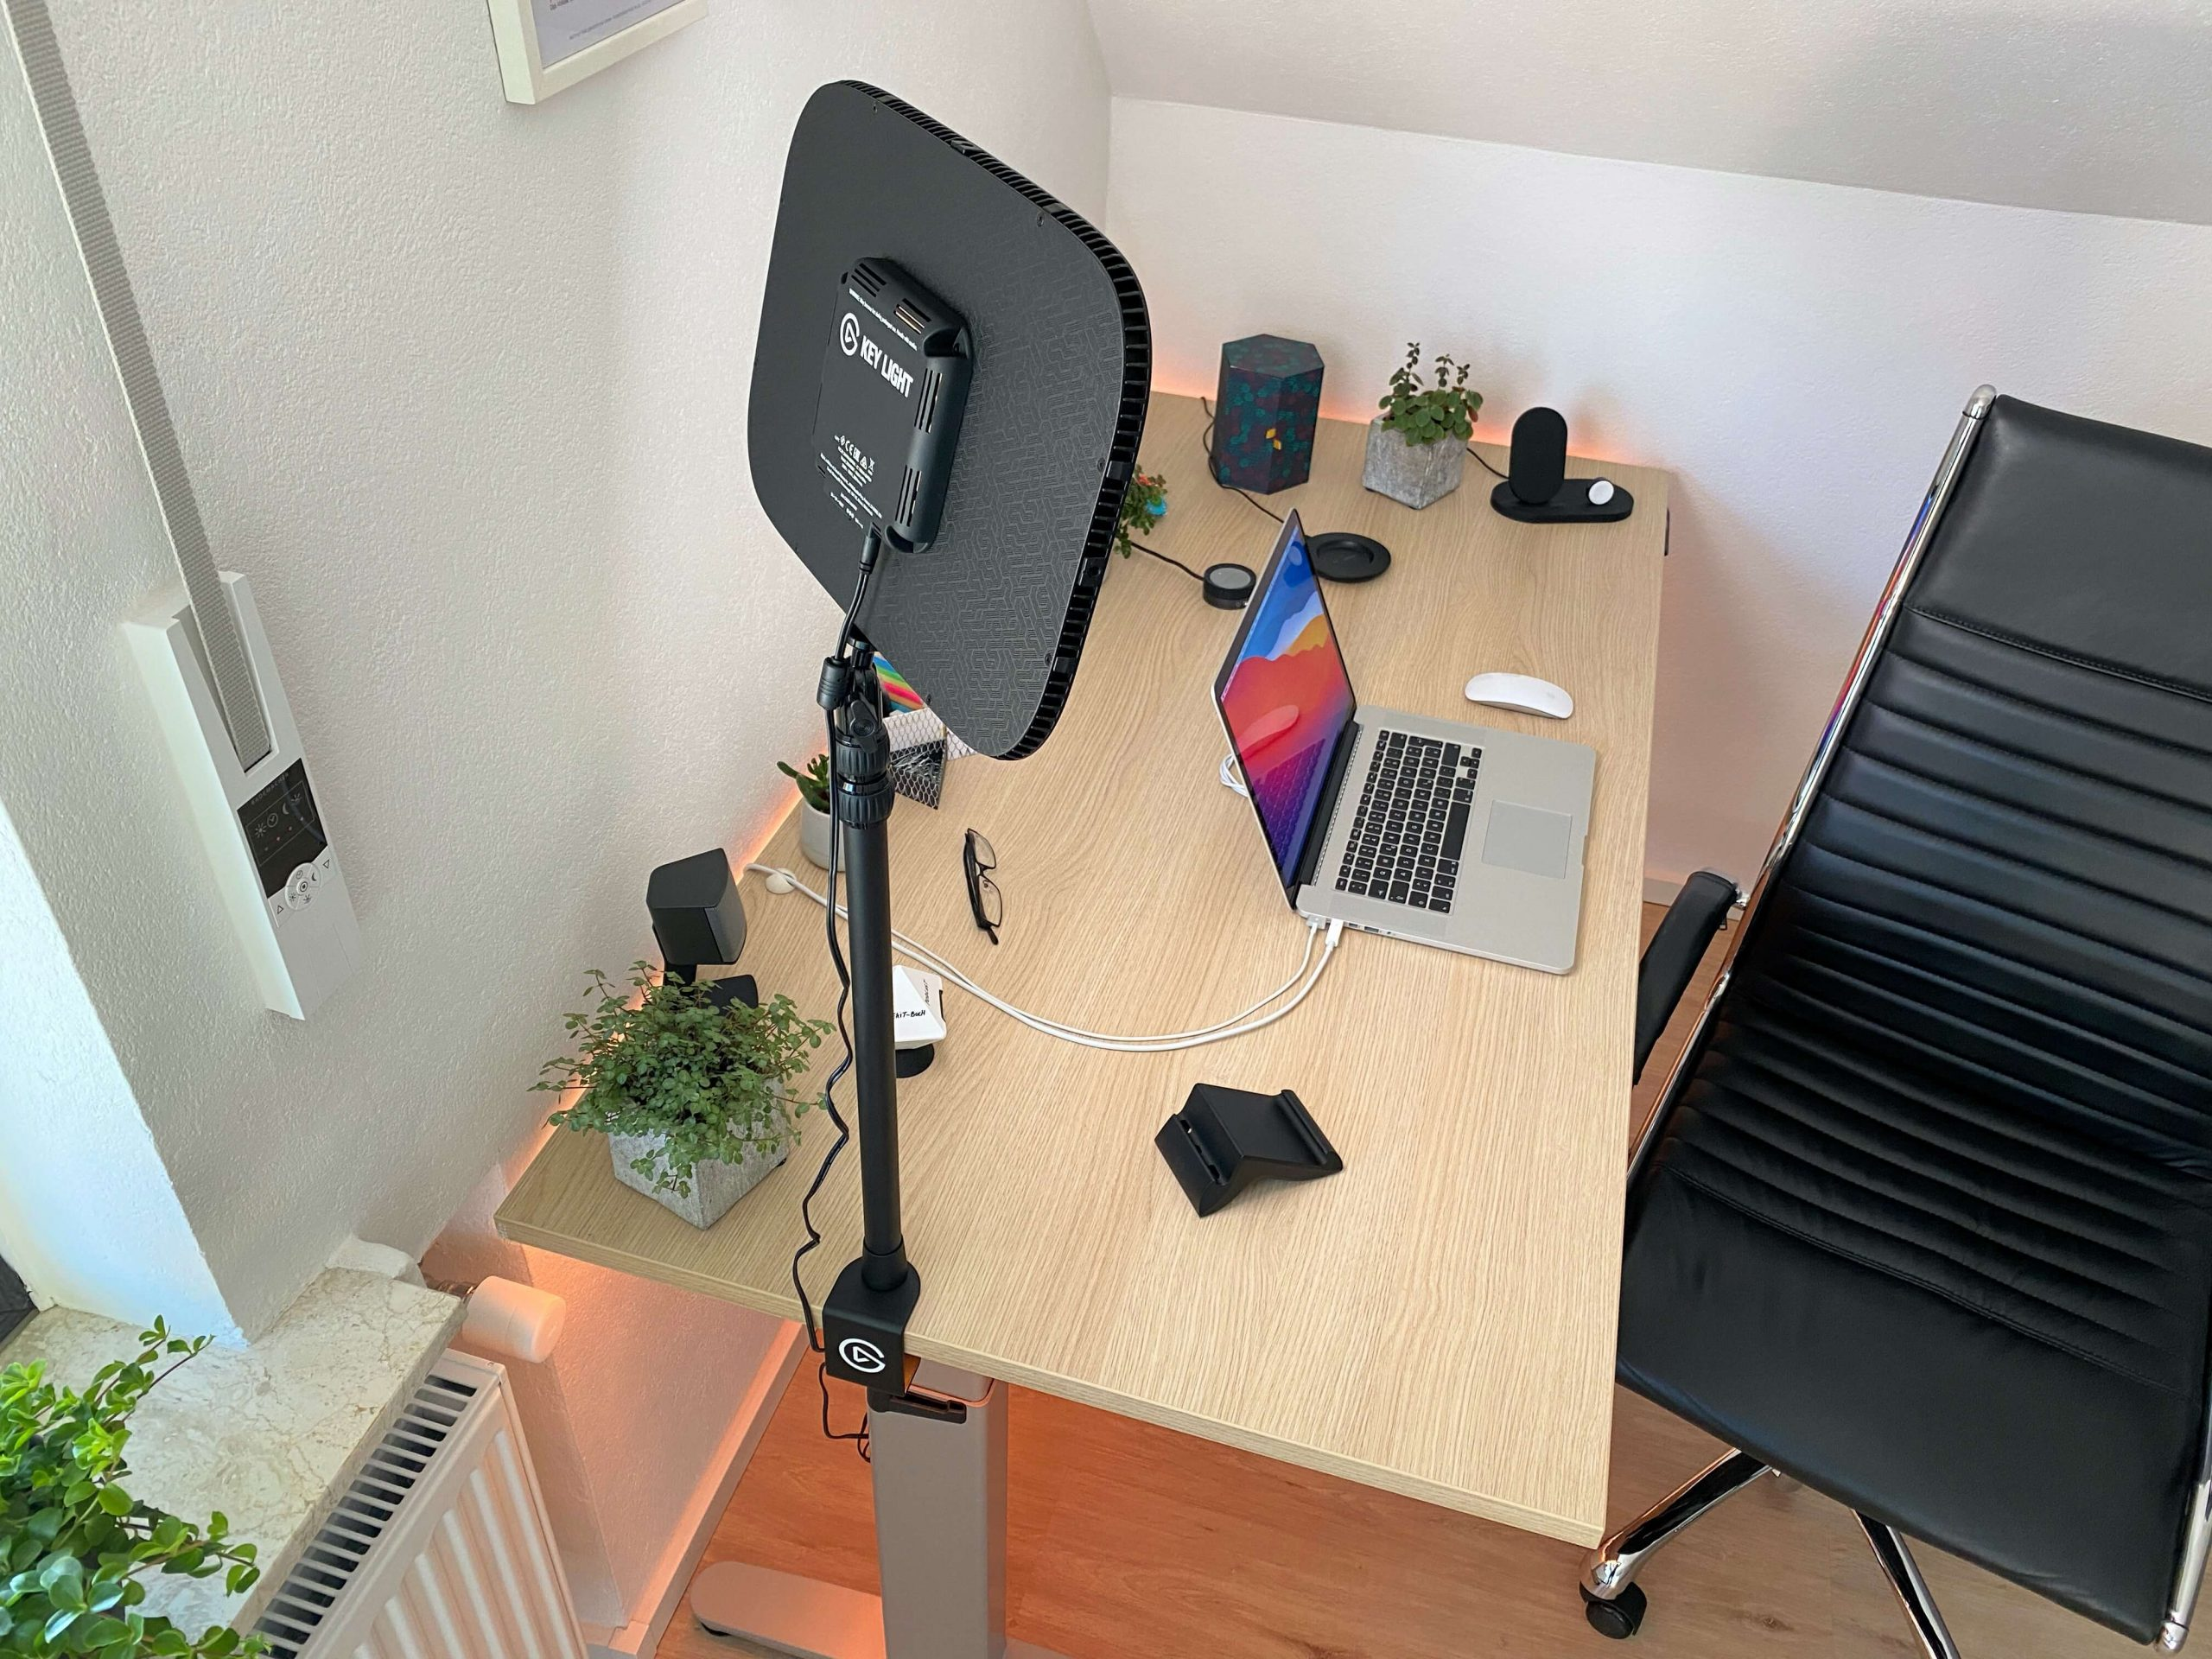 Key-Light-von-Elgato-perfektes-Licht-fuer-Videostreams-und-Co.5-scaled Key Light von Elgato - perfektes Licht für Videostreams und Co.